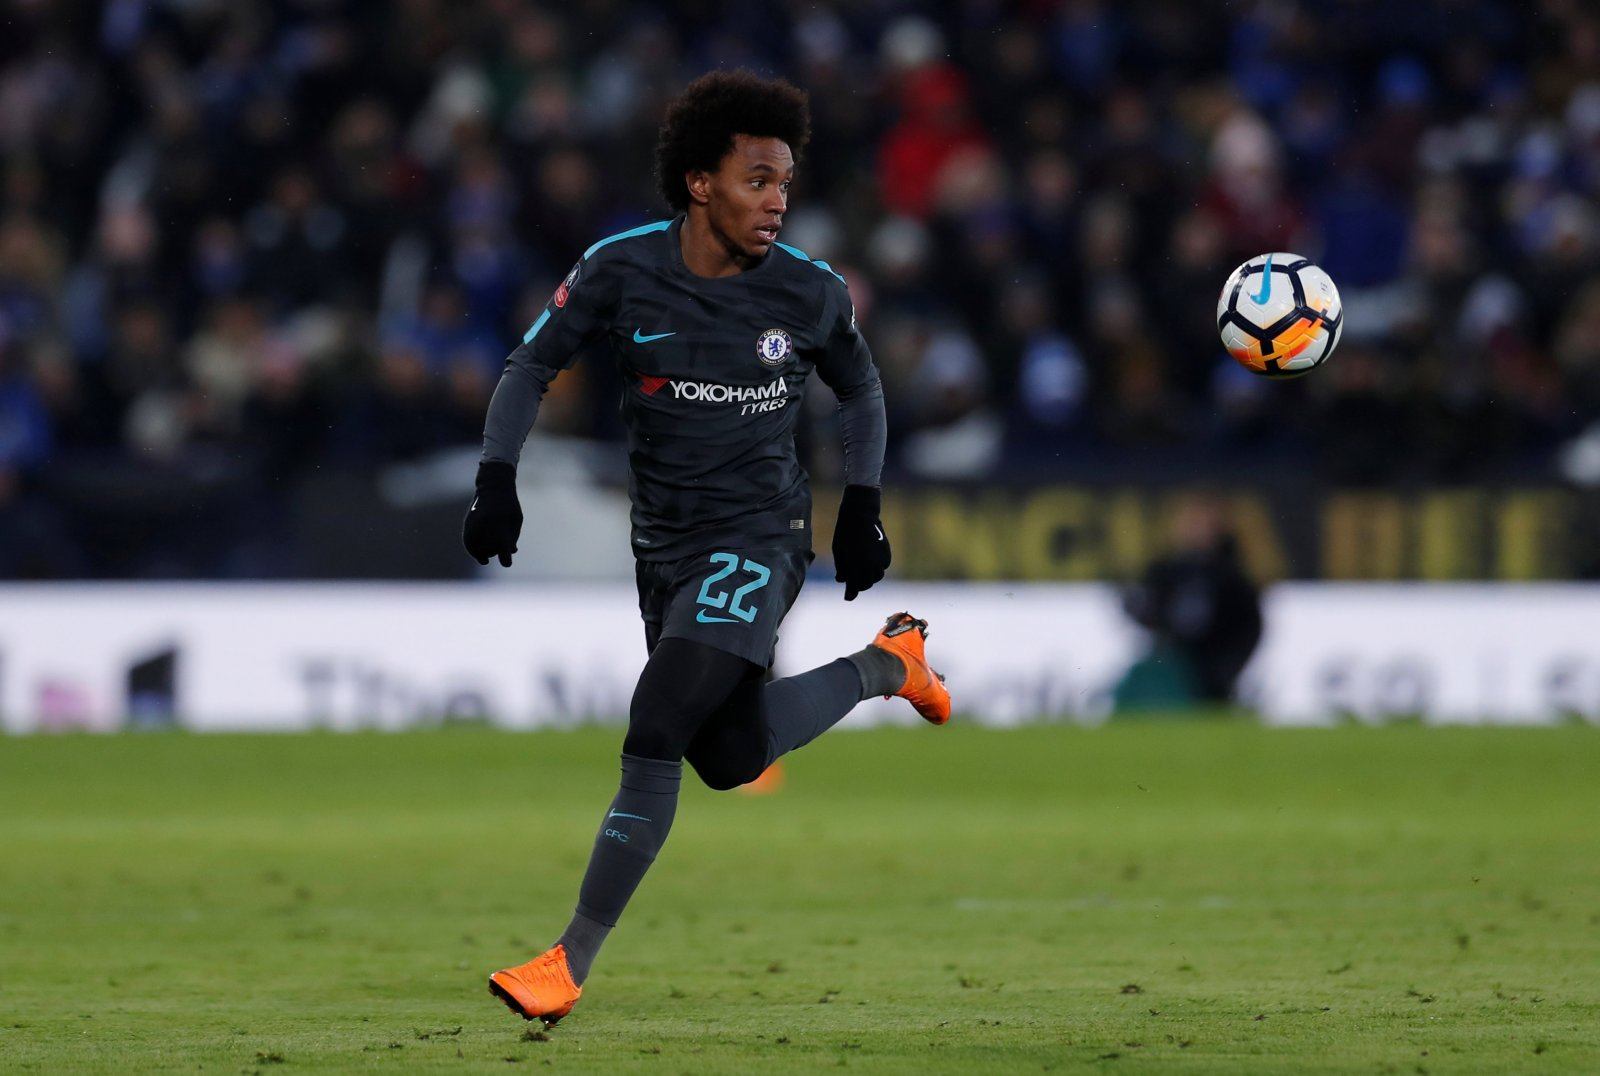 Everton simply must make audacious summer move for wantaway Willian